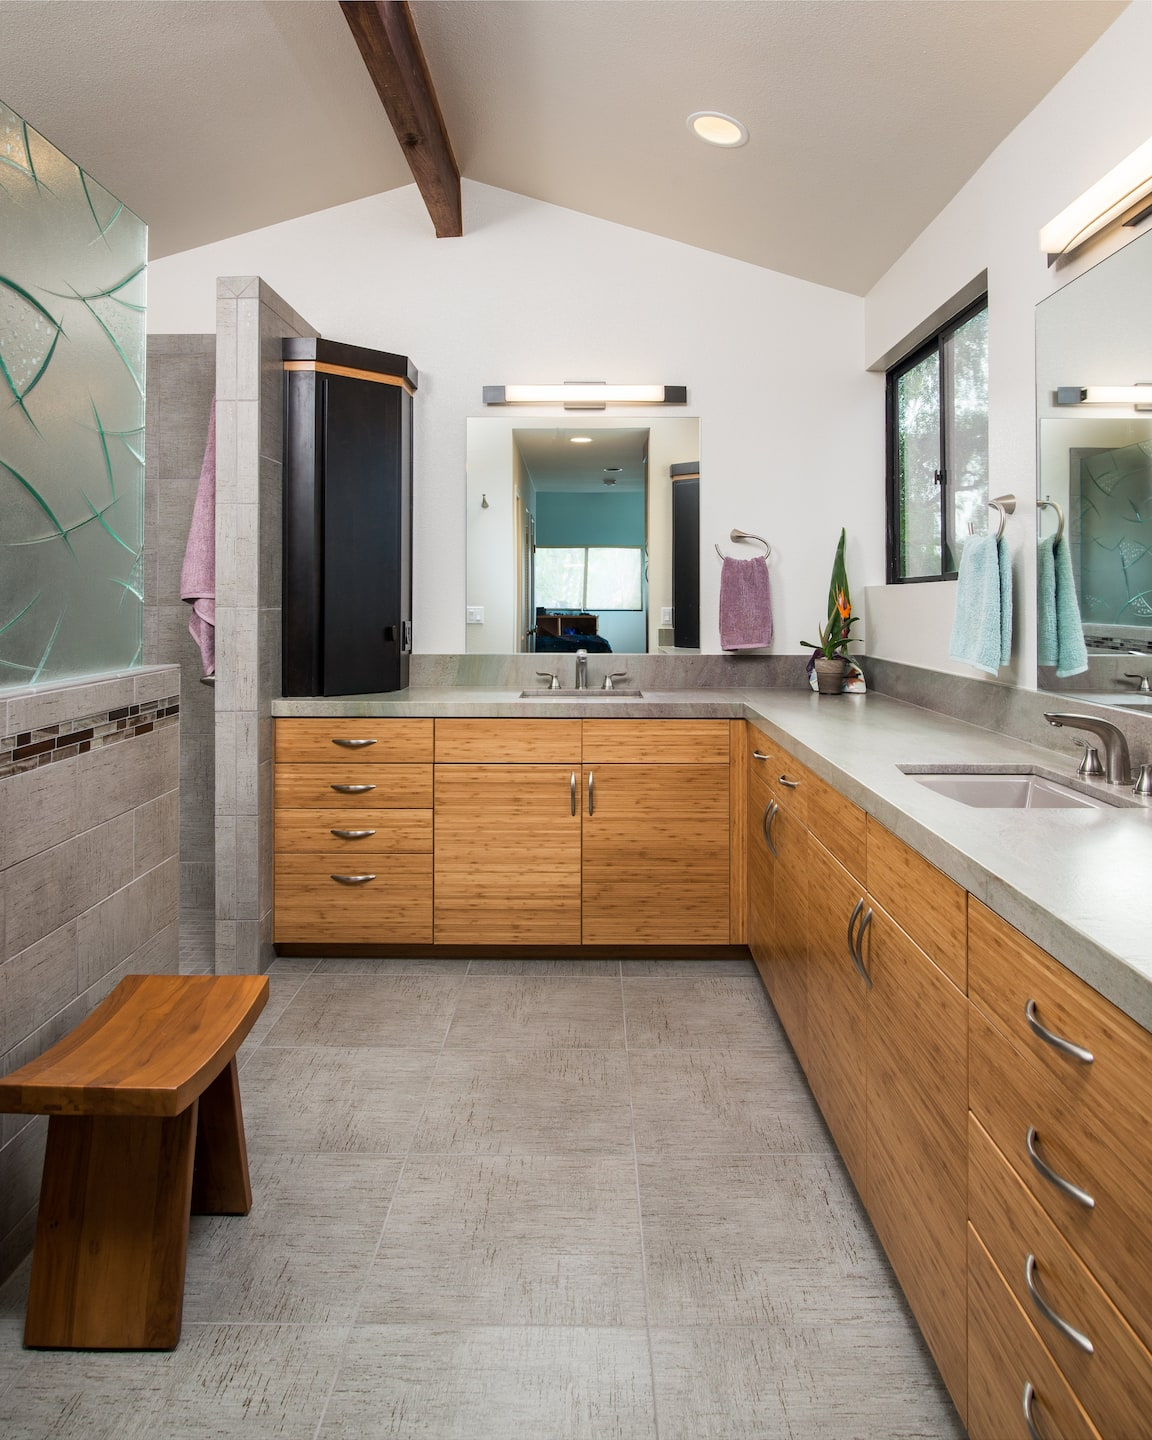 Remodeled Bathroom With Bamboo Cabinets, Grey Tile, Brushed Nickel Fixtures  And Walk In